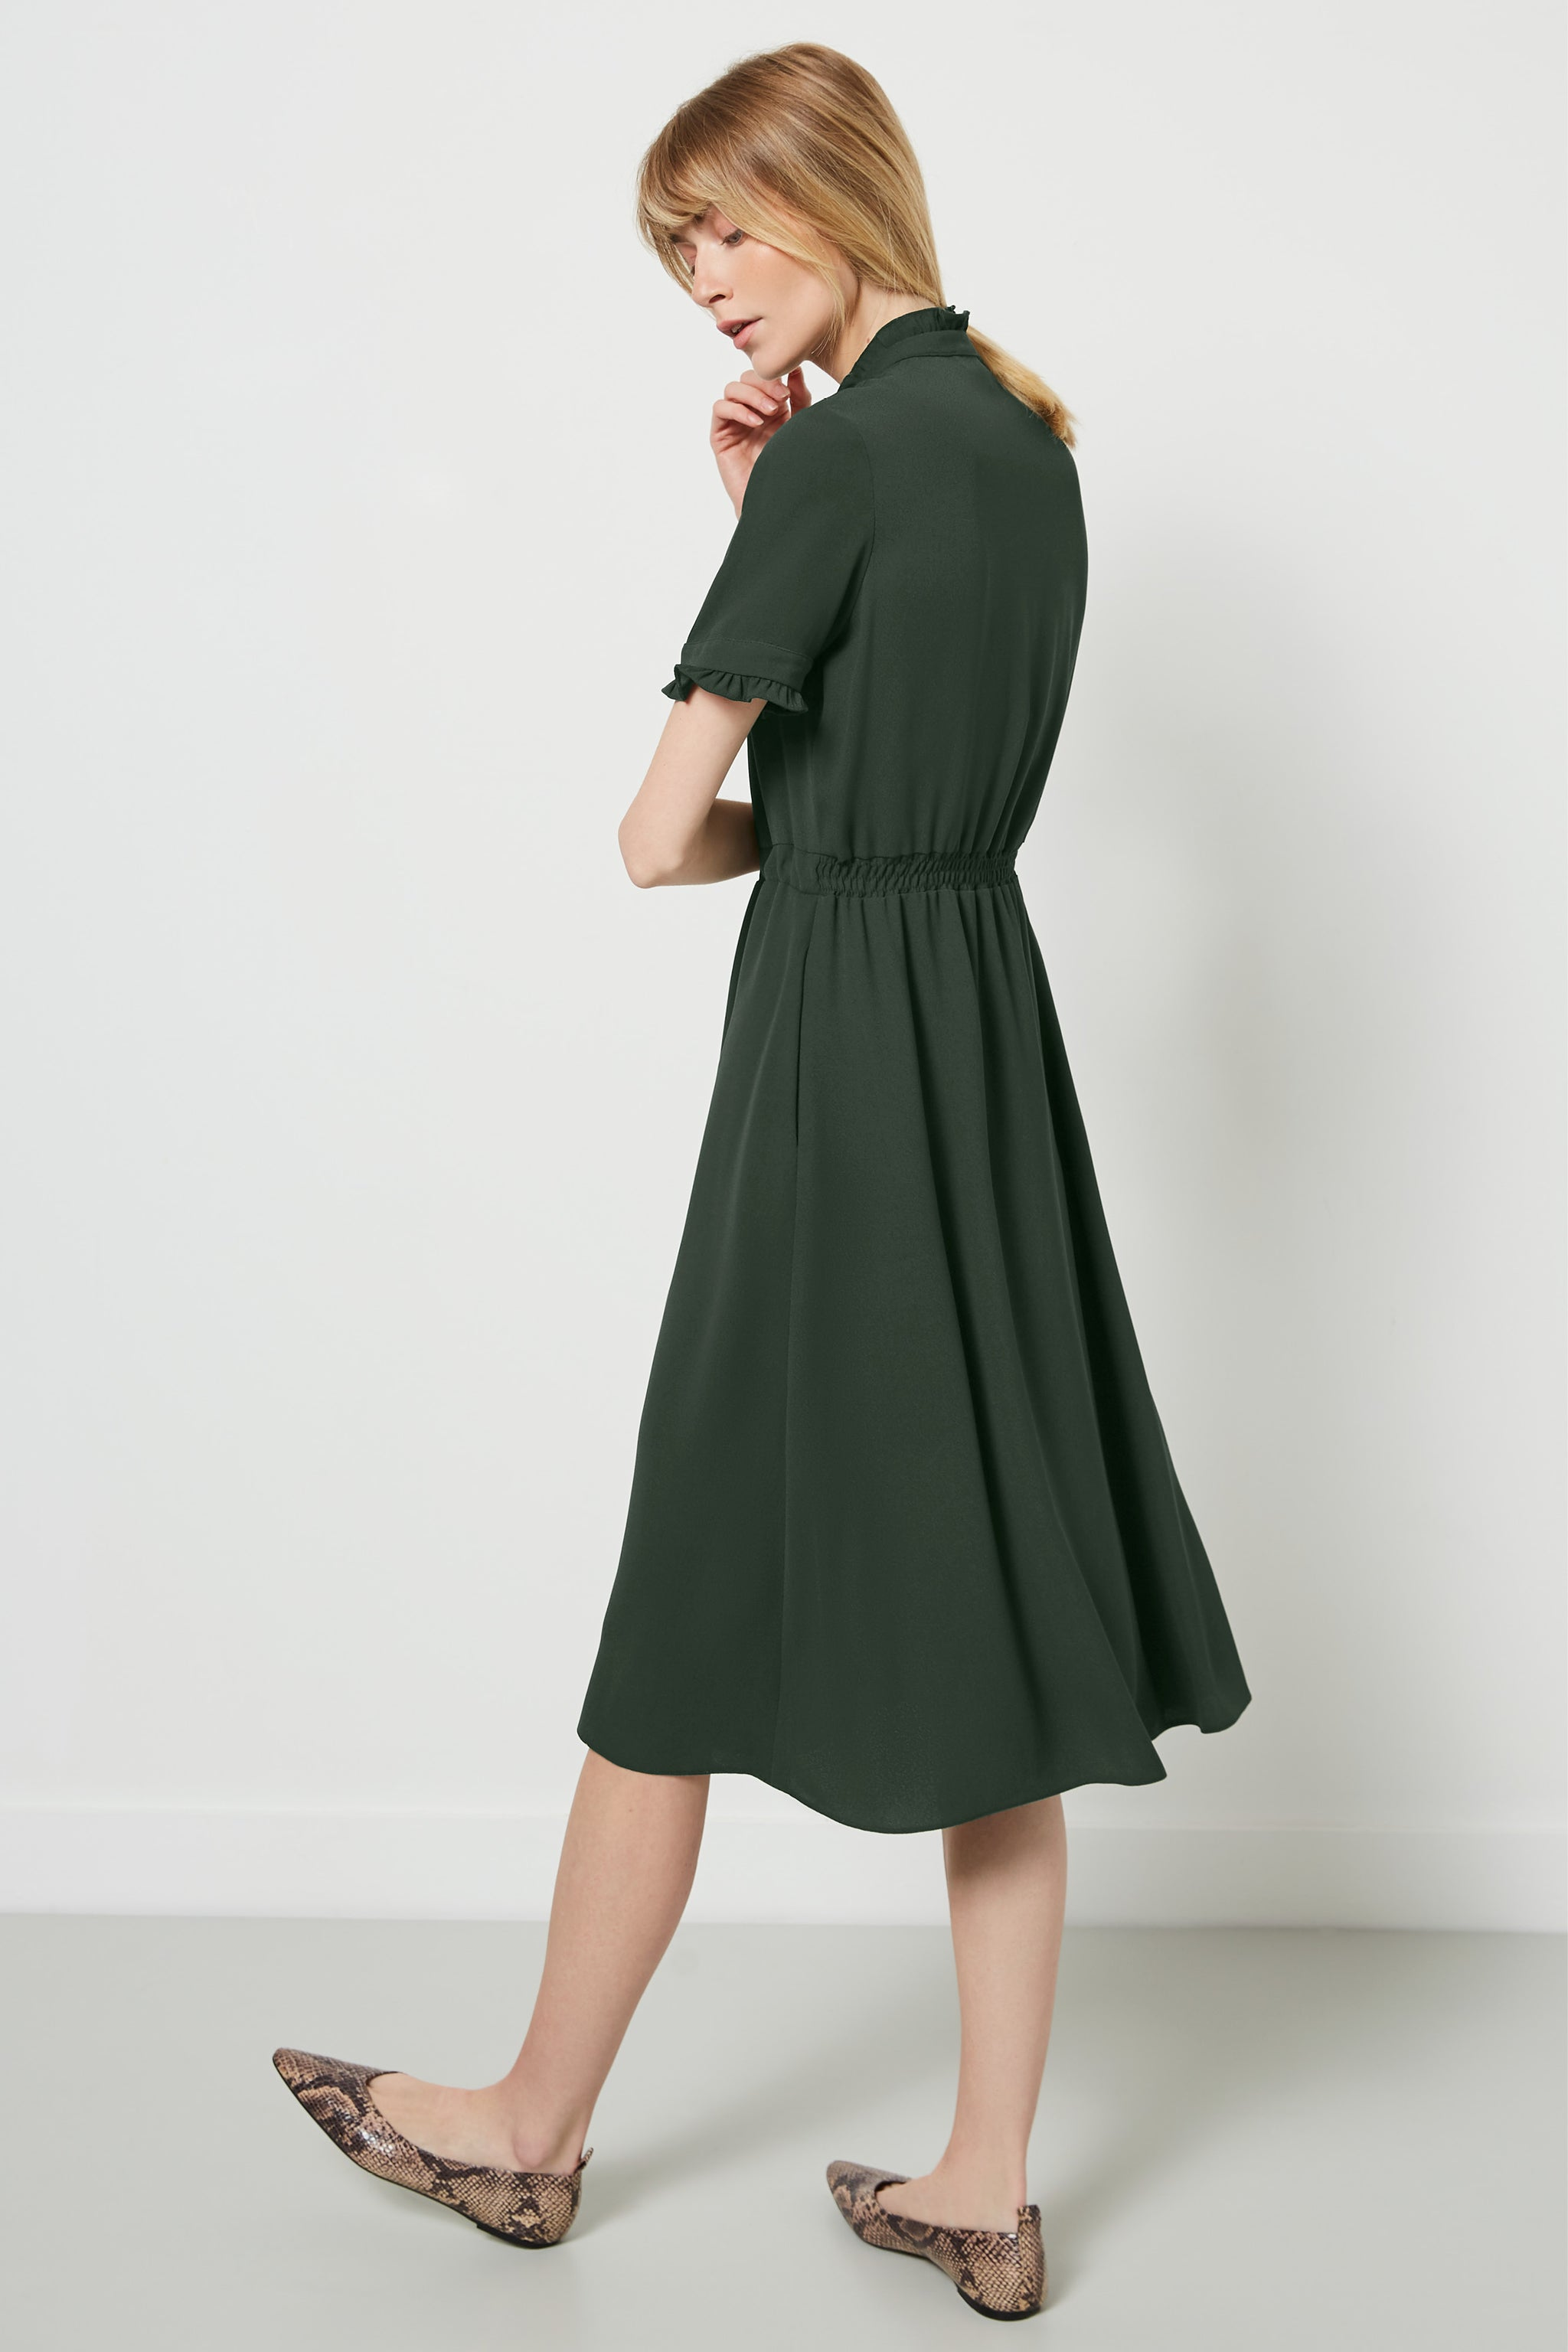 Canterbury Khaki Dress